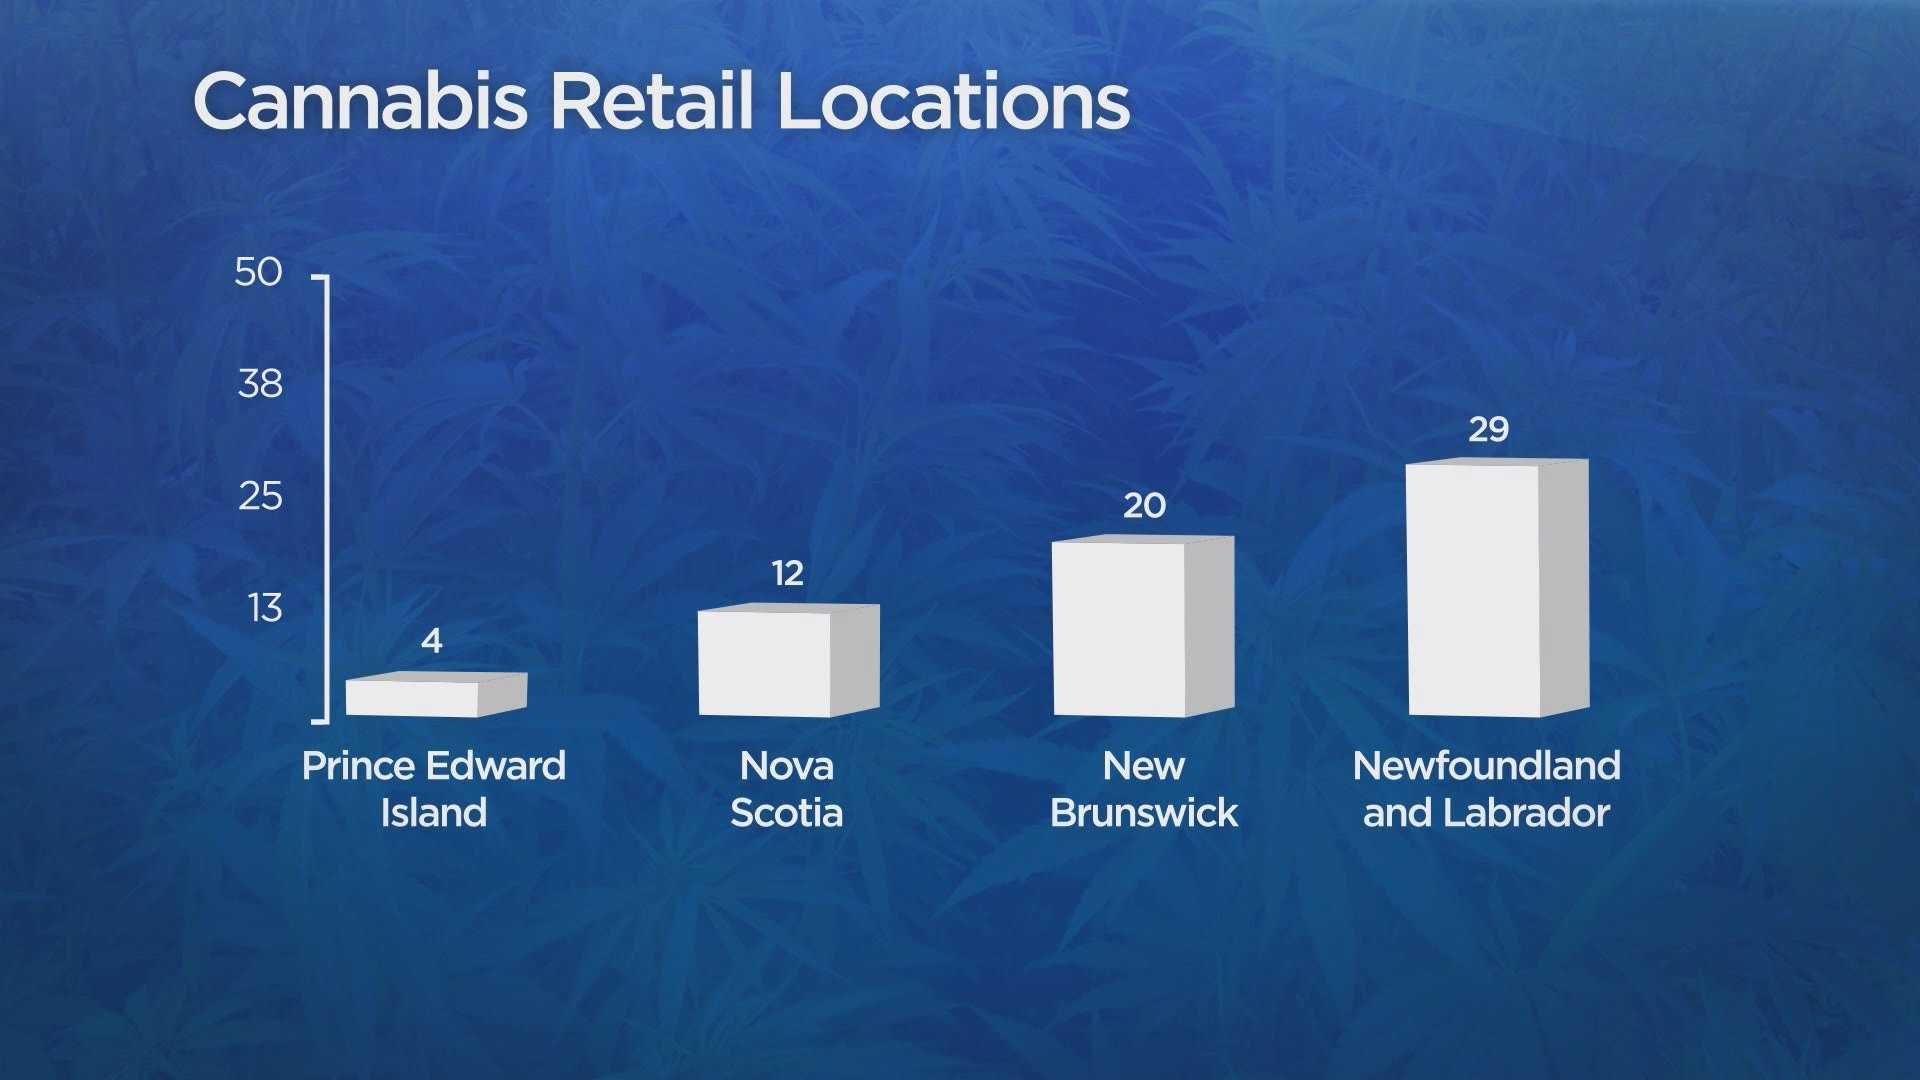 atlantic provinces cannabis retail locations